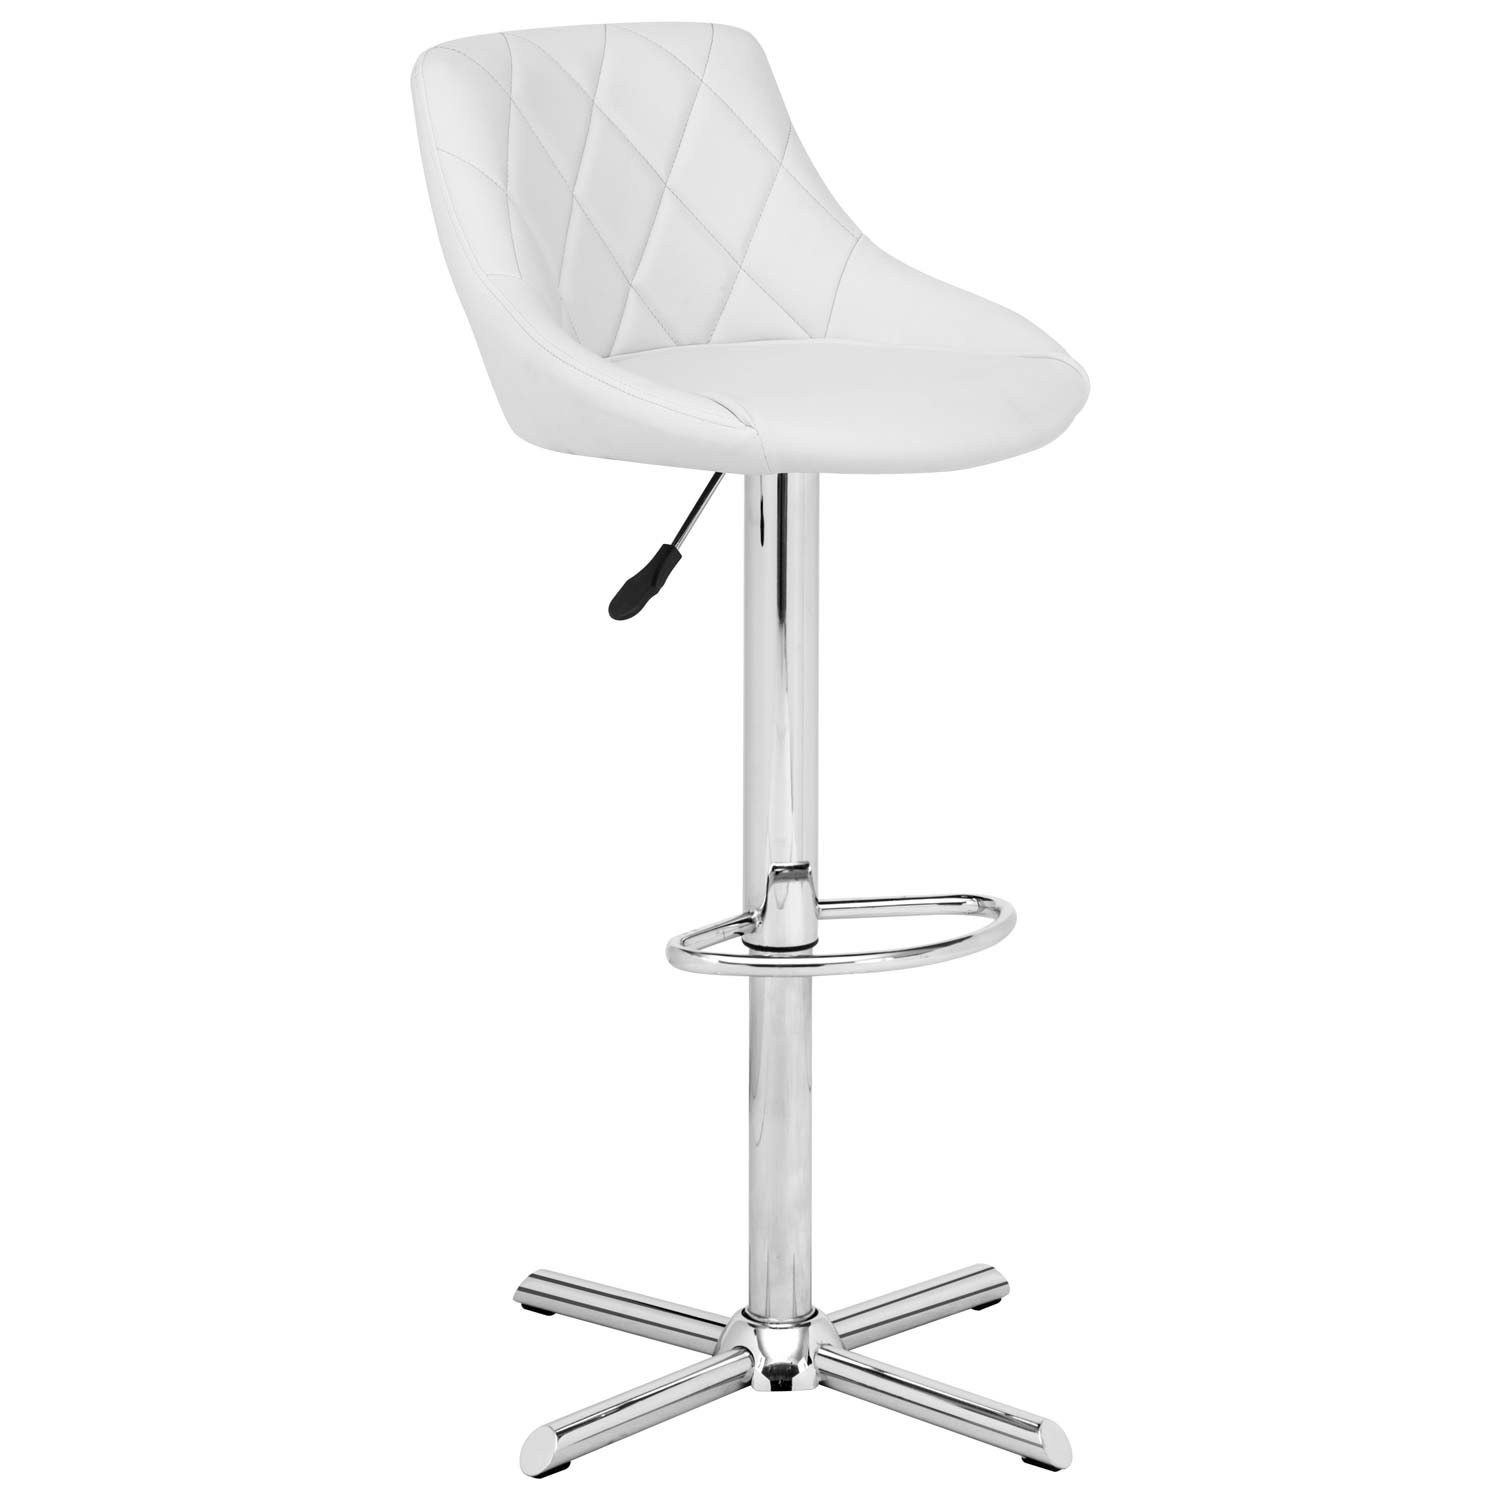 Devilin Diamond Tufted Bar Stool - Chrome Steel, White